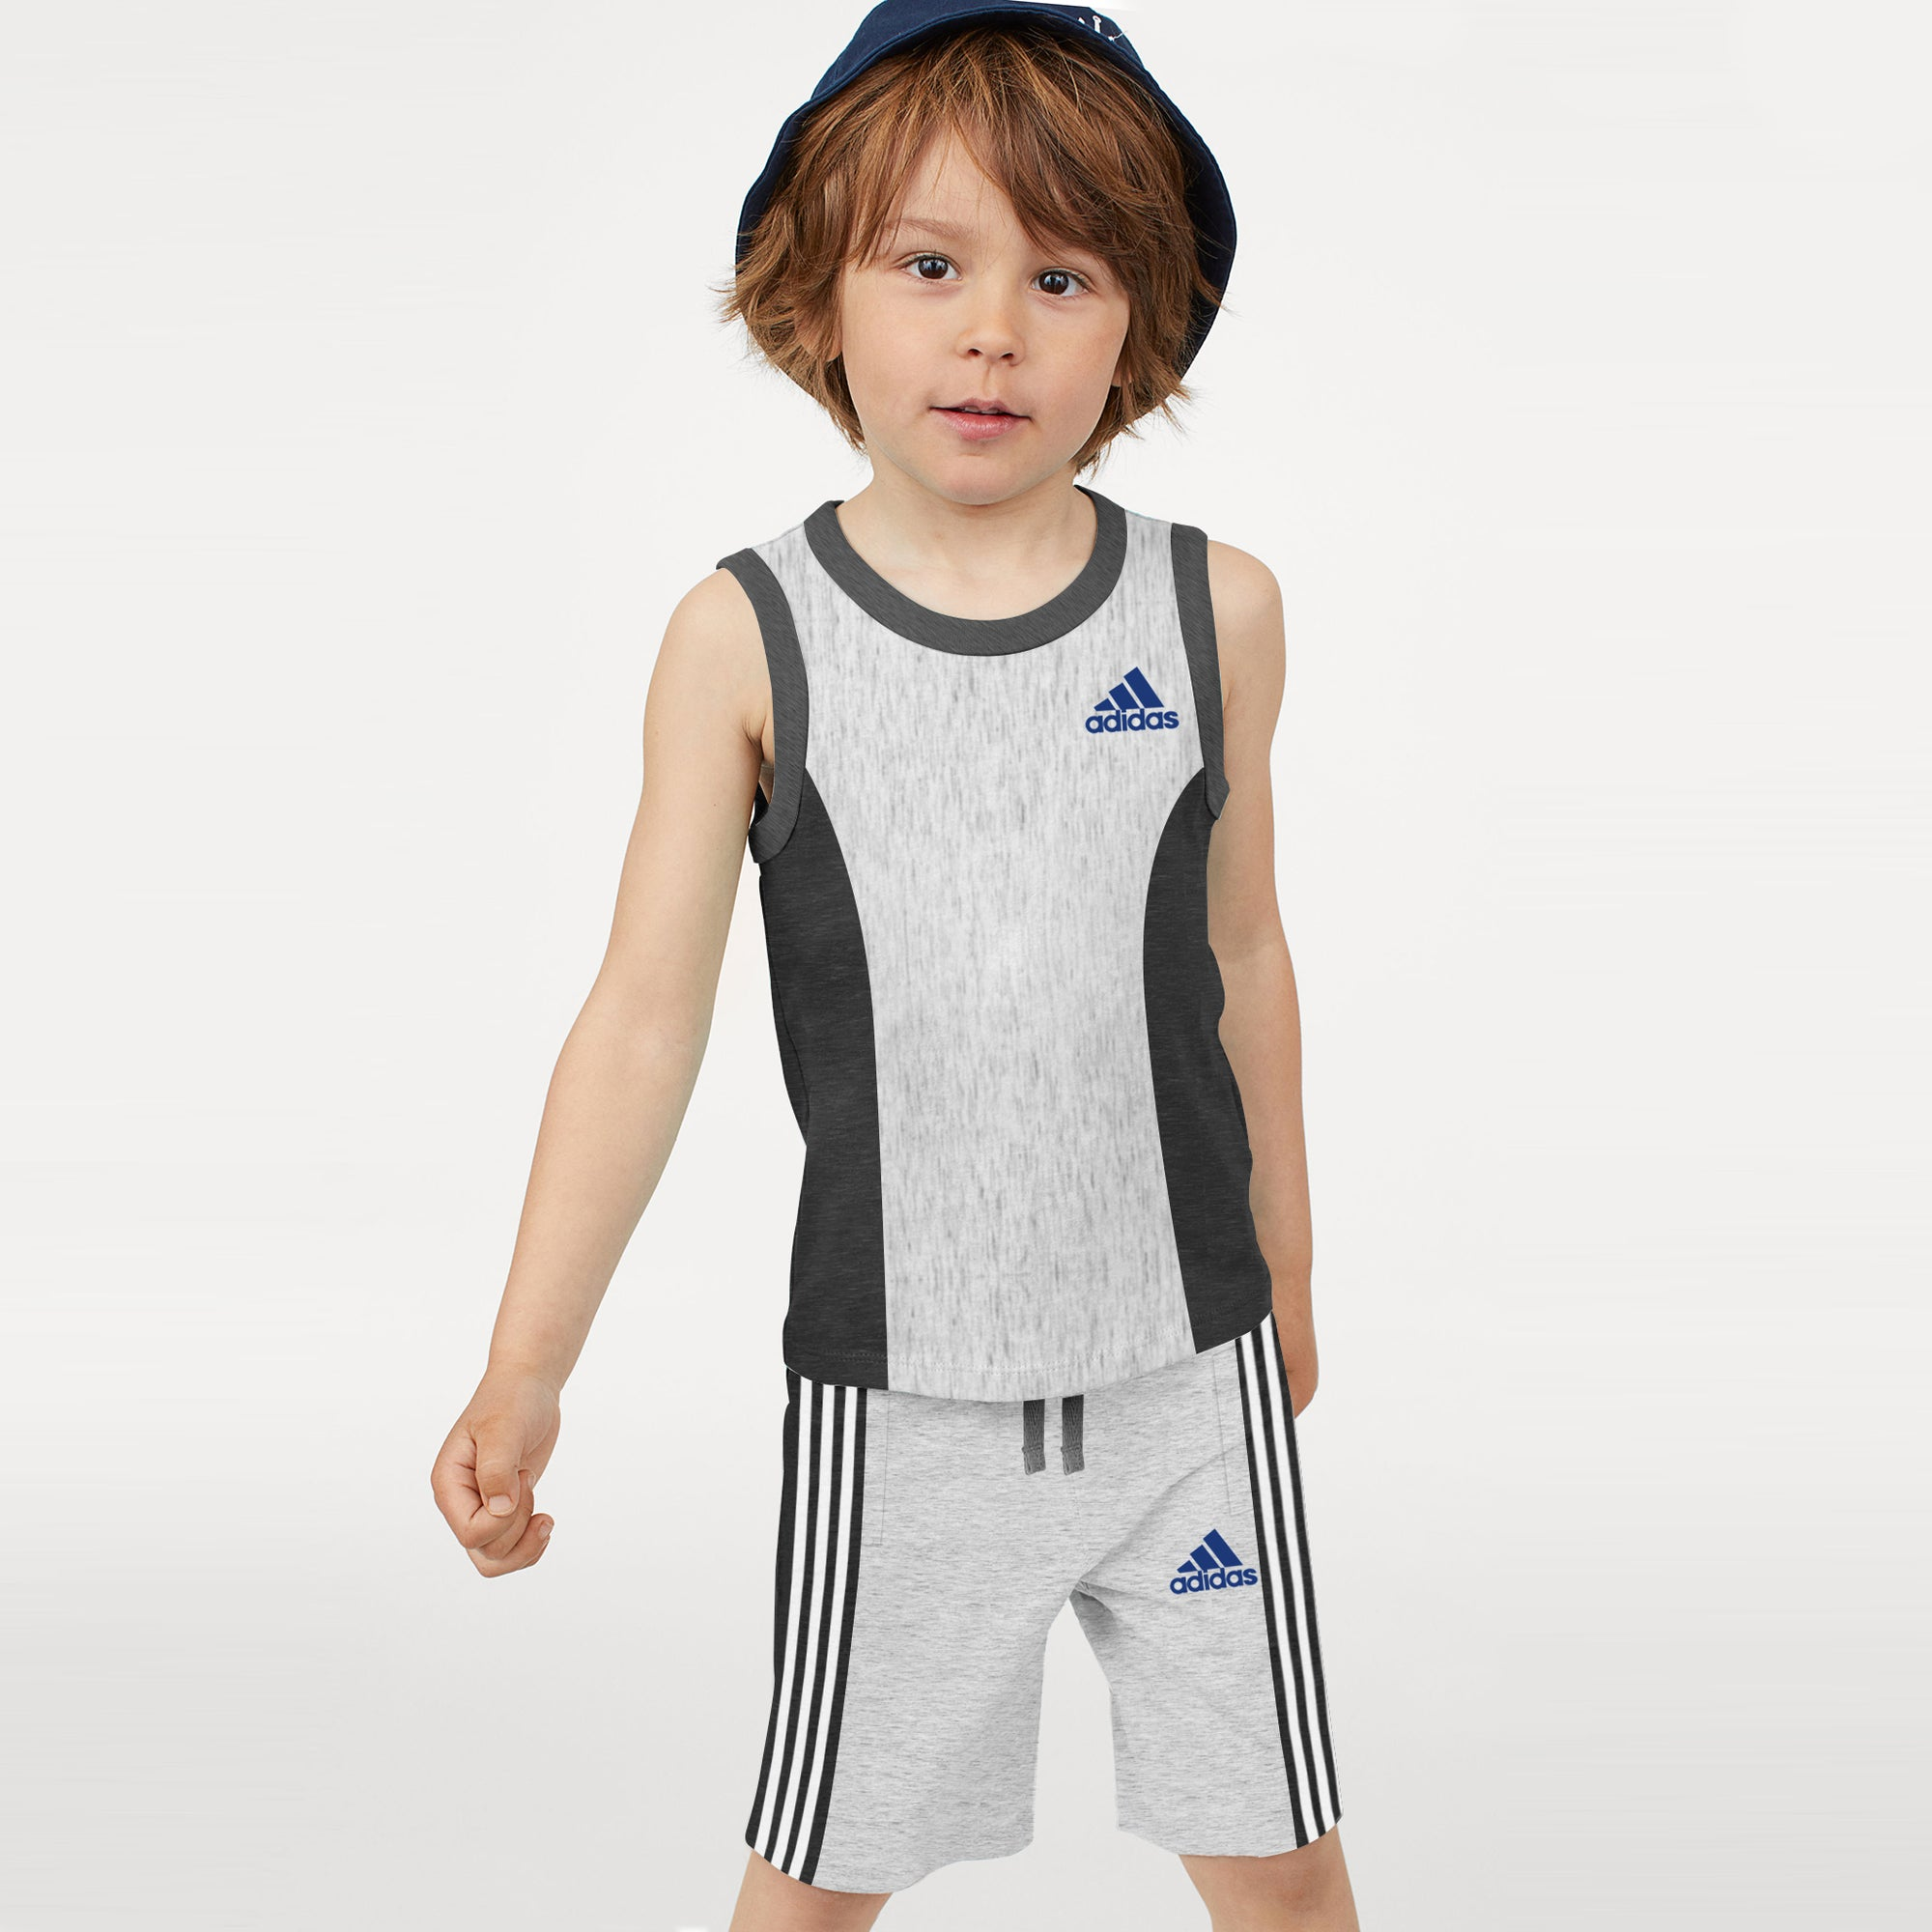 Adidas Single Jersey Sport Suit For Kids-Grey & Charcoal Melange with White Stripe-BE9435